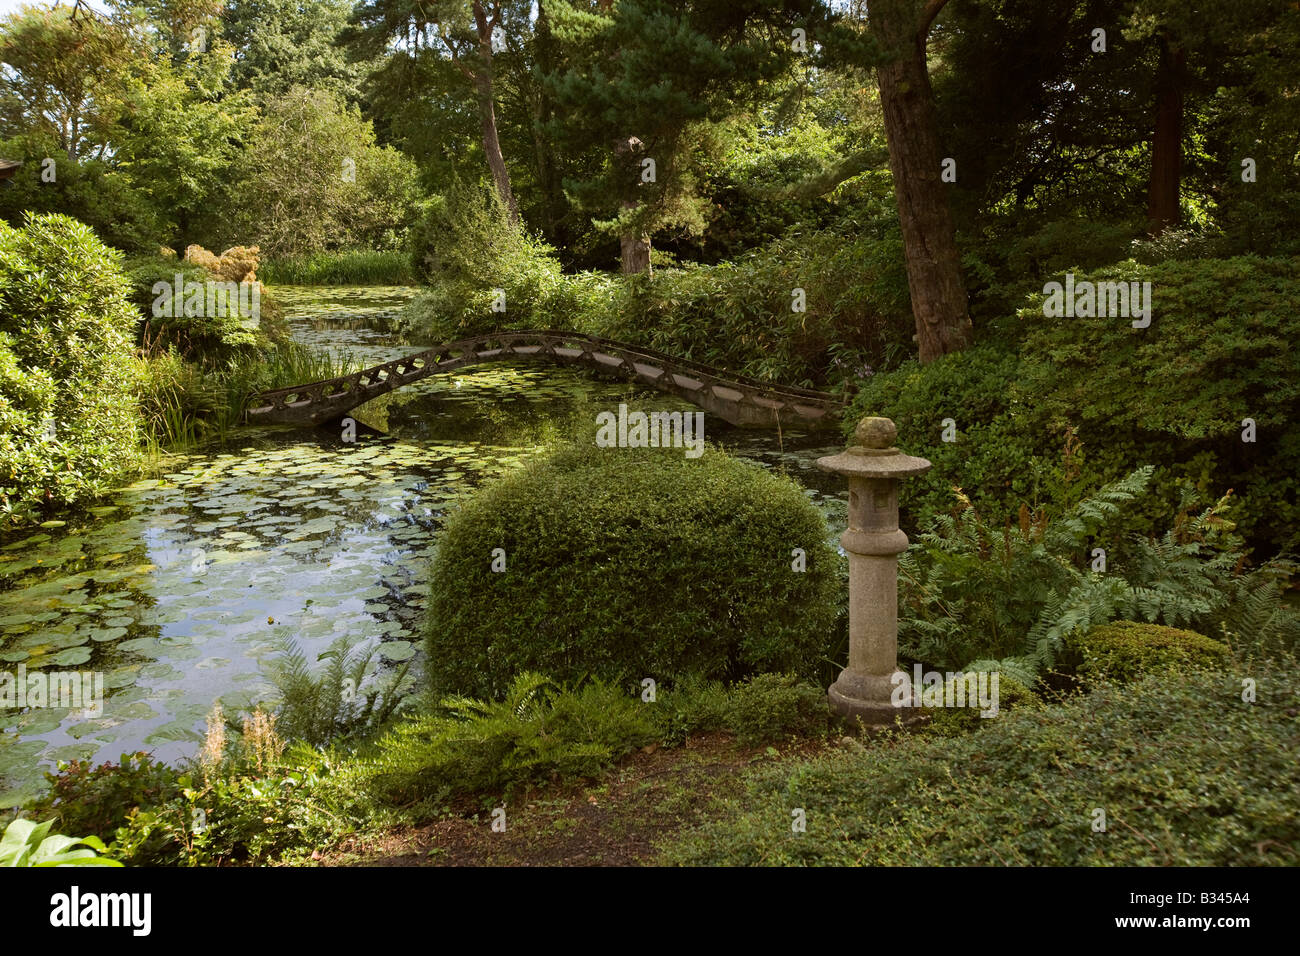 Japanese Garden Design Stock Photos & Japanese Garden Design Stock ...